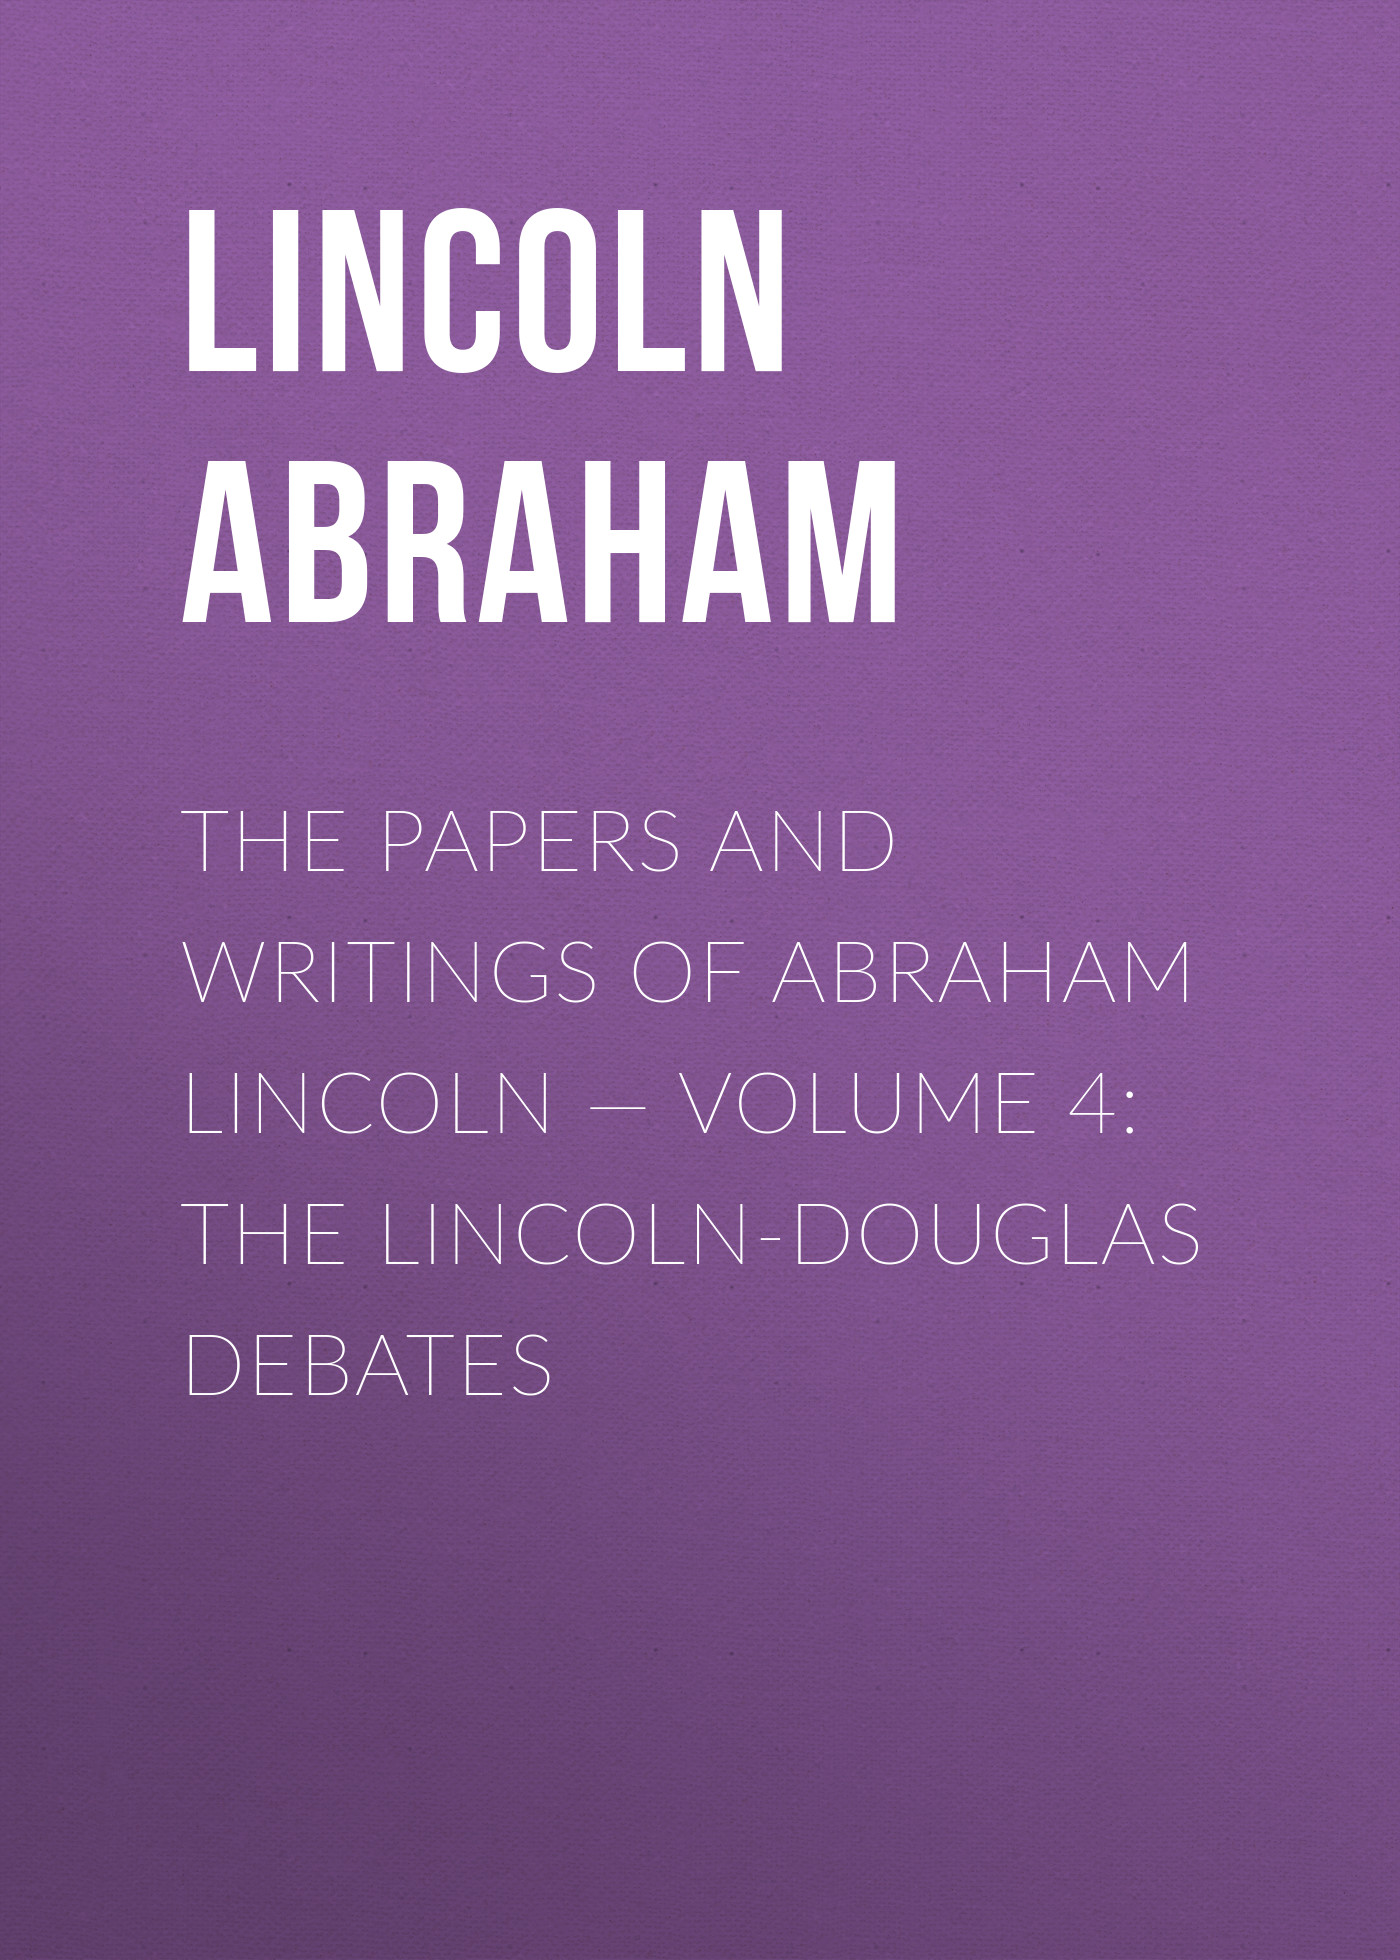 Lincoln Abraham The Papers And Writings Of Abraham Lincoln — Volume 4: The Lincoln-Douglas Debates